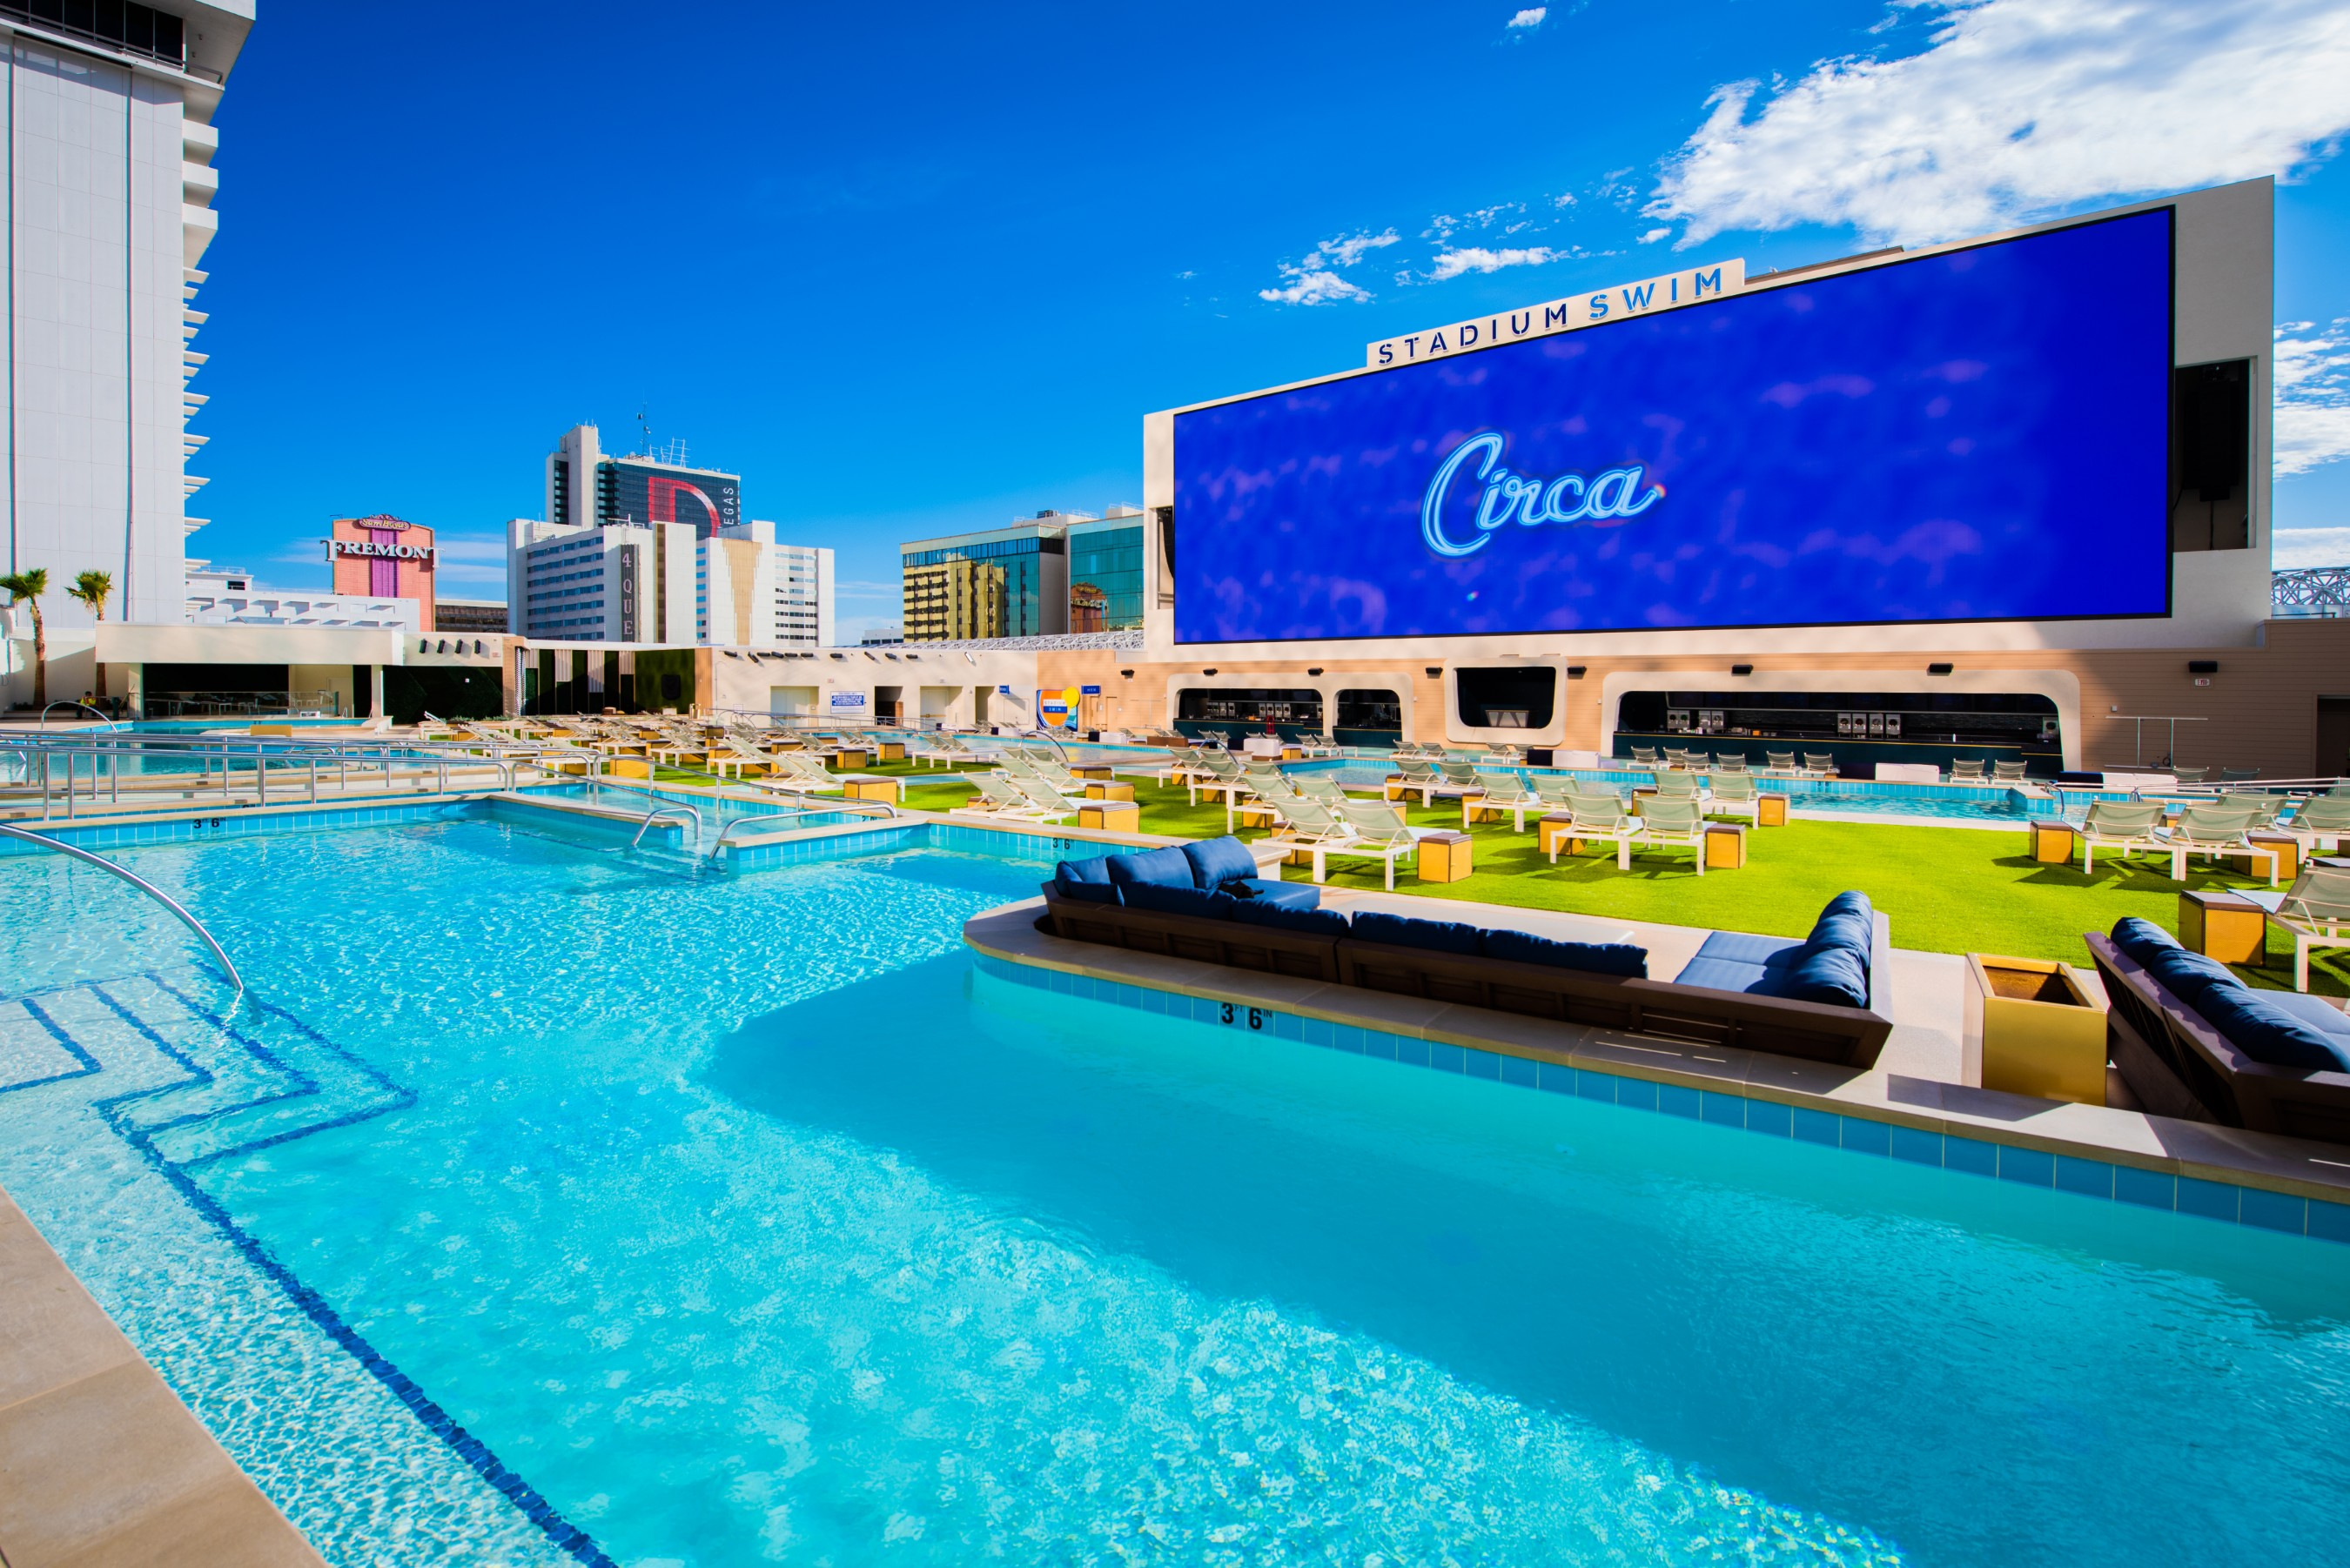 Stadium Swim at Circa Resort & Casino is the largest destination pool experience for sports fans in the US, open 365 days a year with a 14-million-pixel screen.